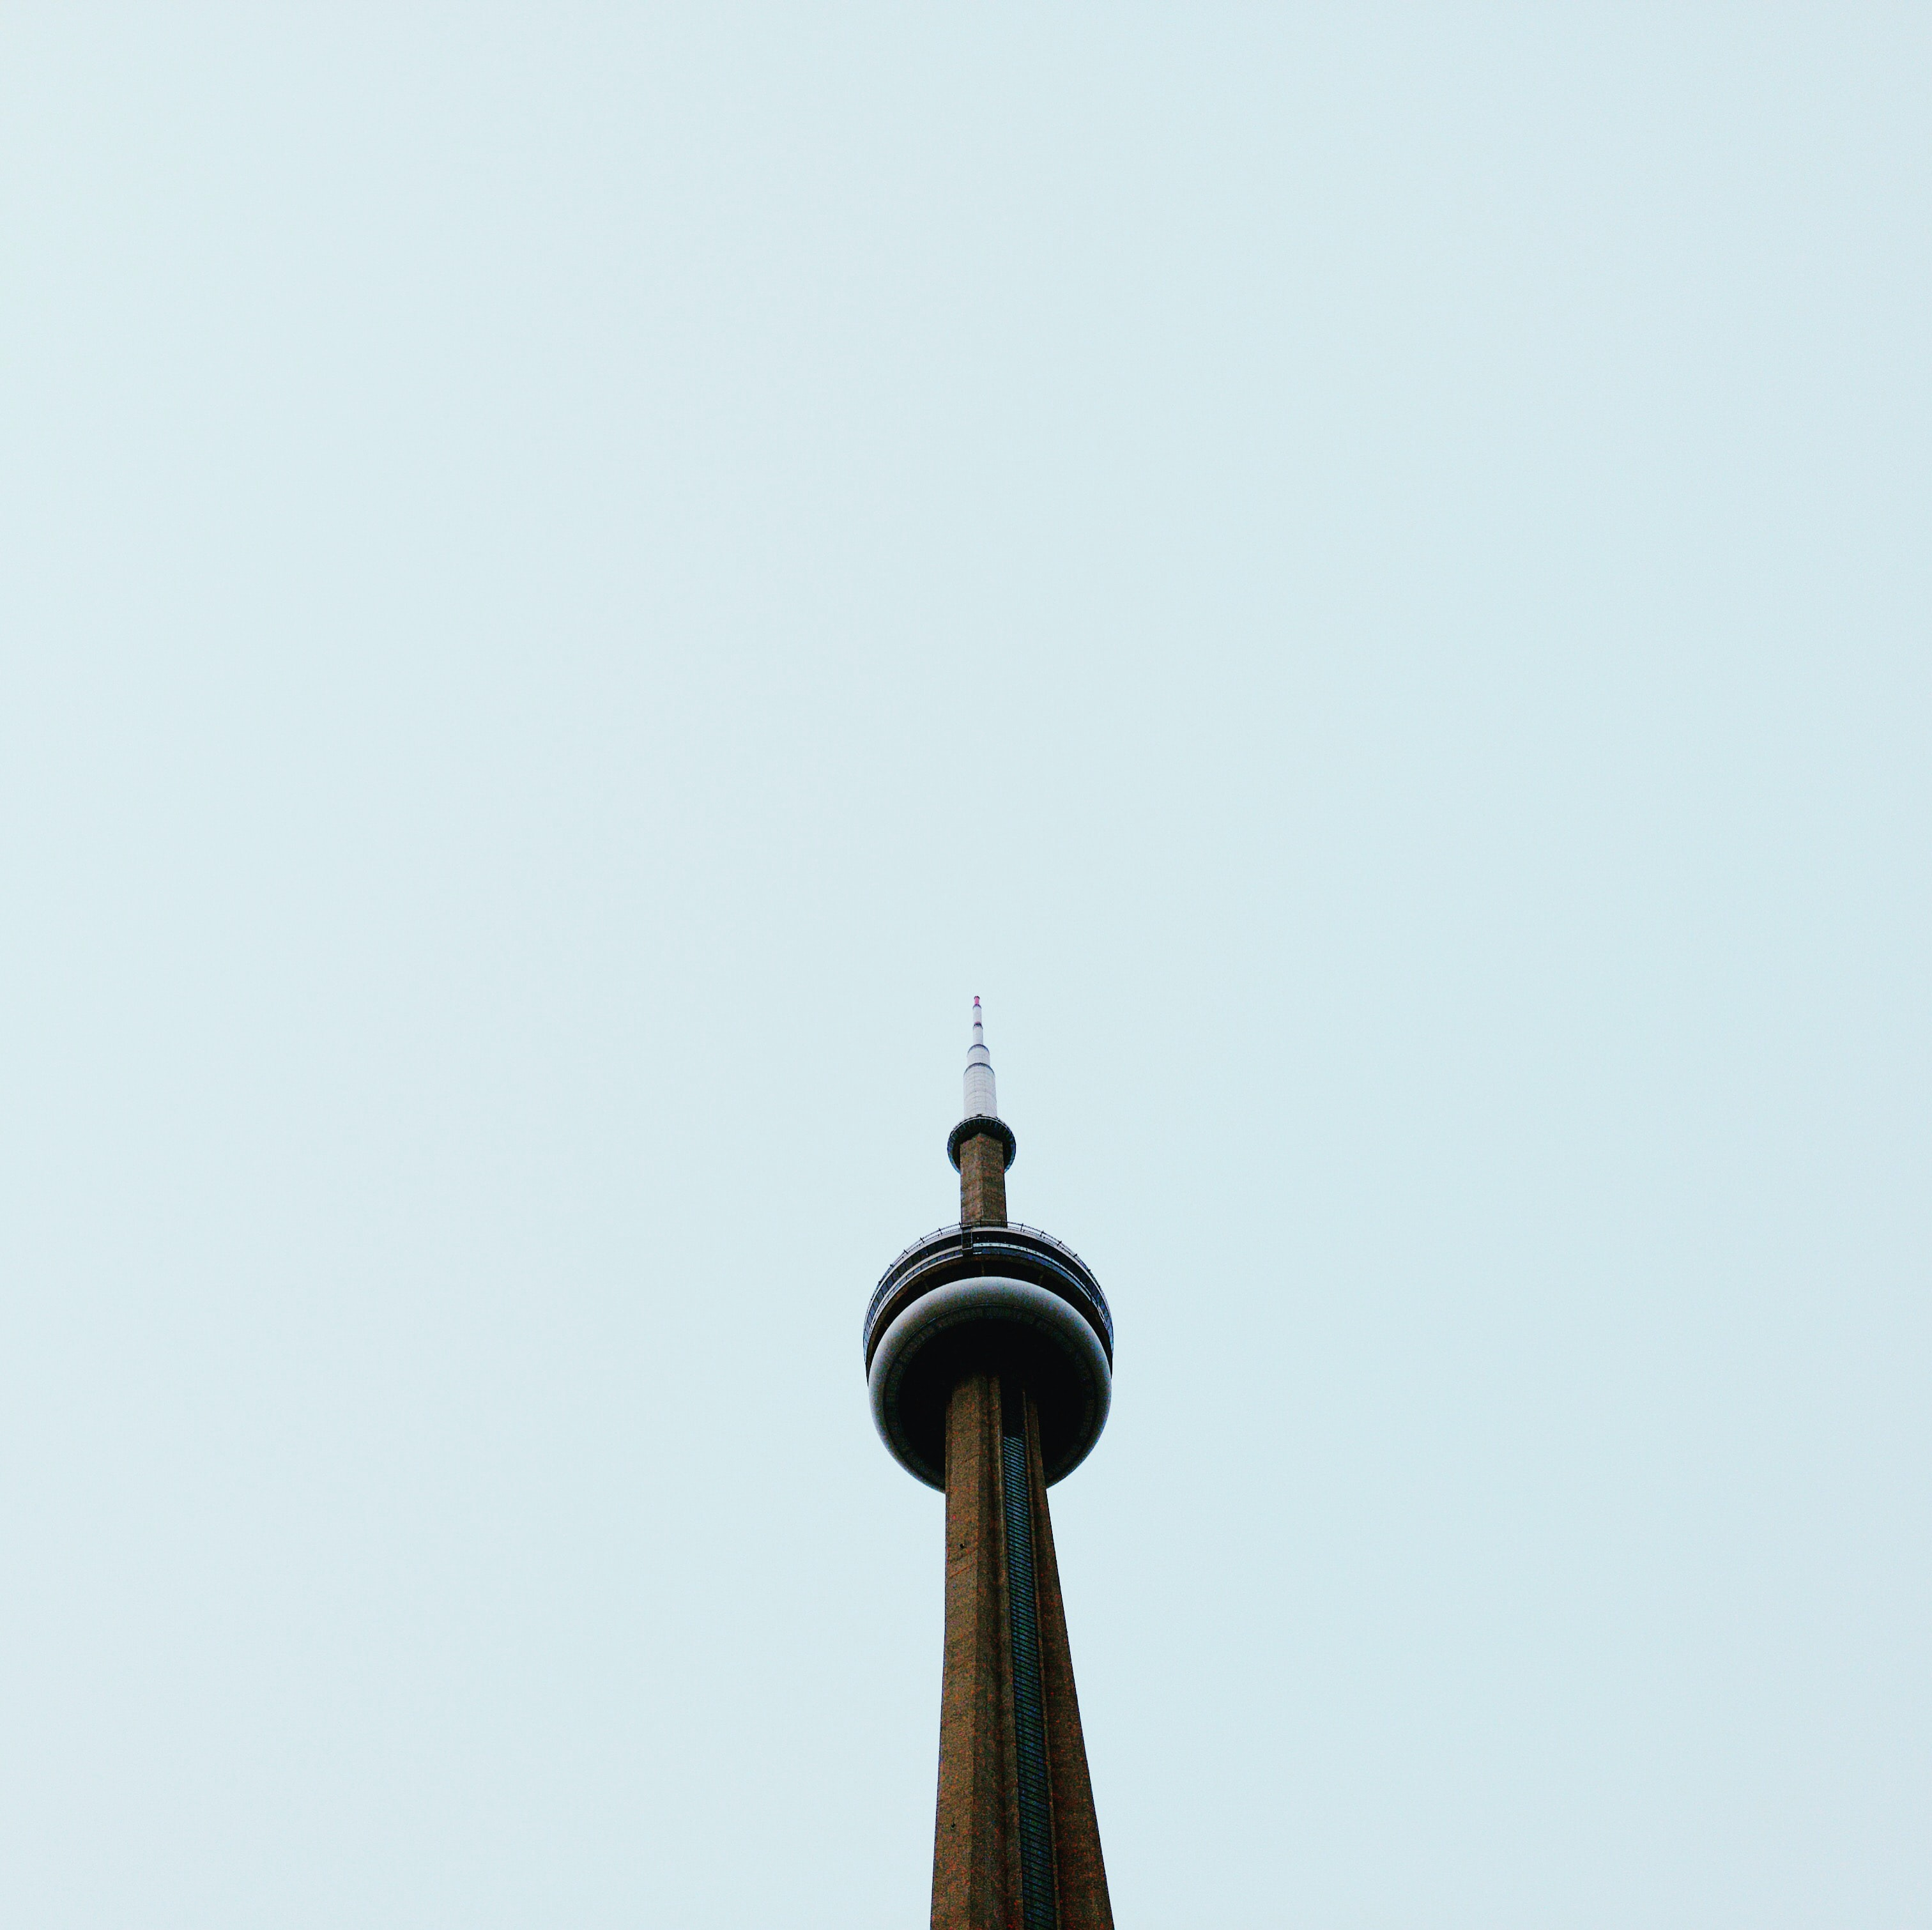 low angle photography of CN tower under blue sky during daytime